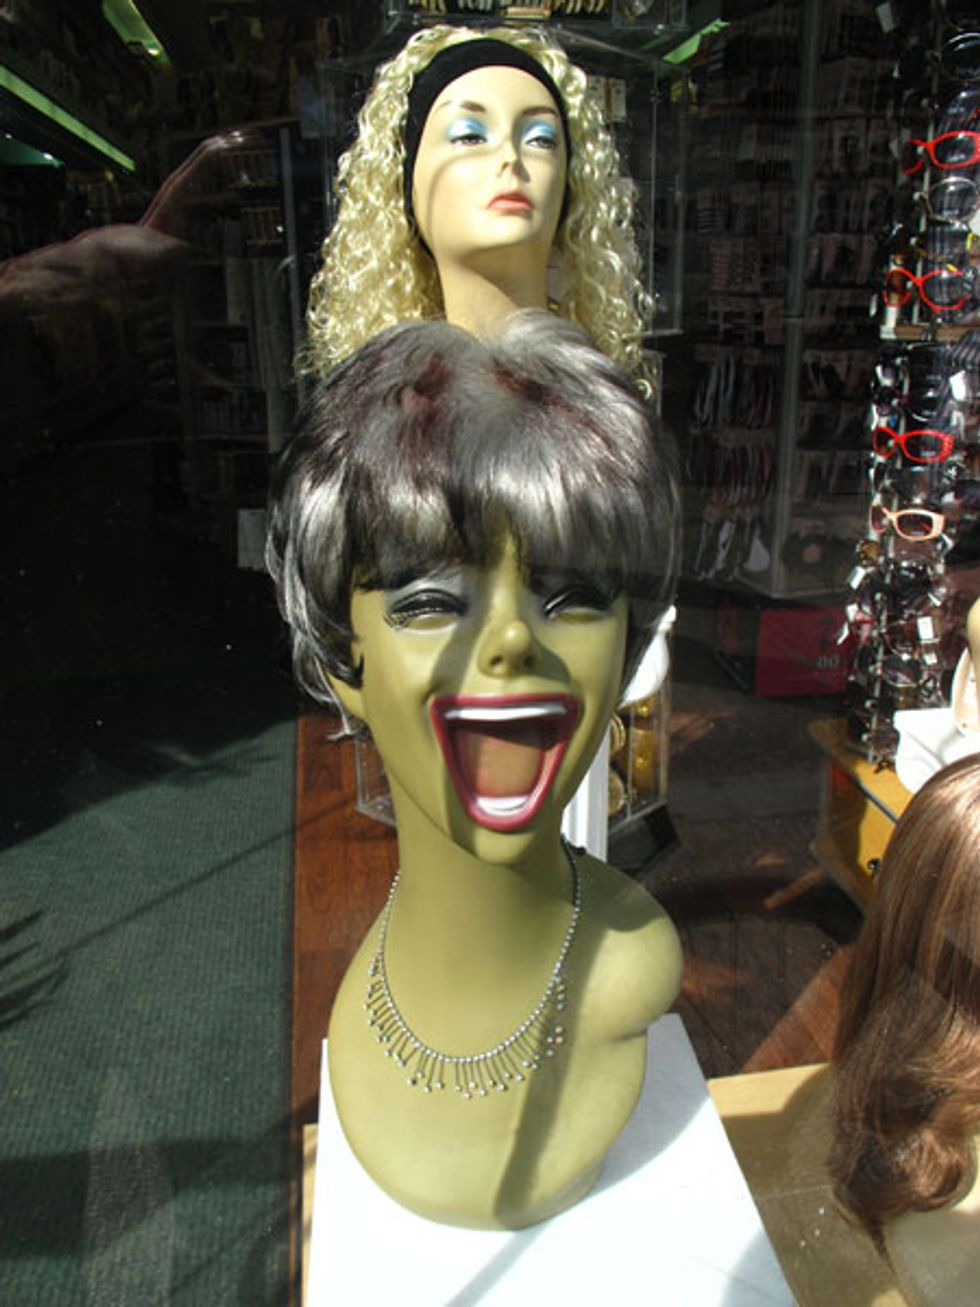 Beauty Look of the Day: Scary Mannequin at the Wig Store!